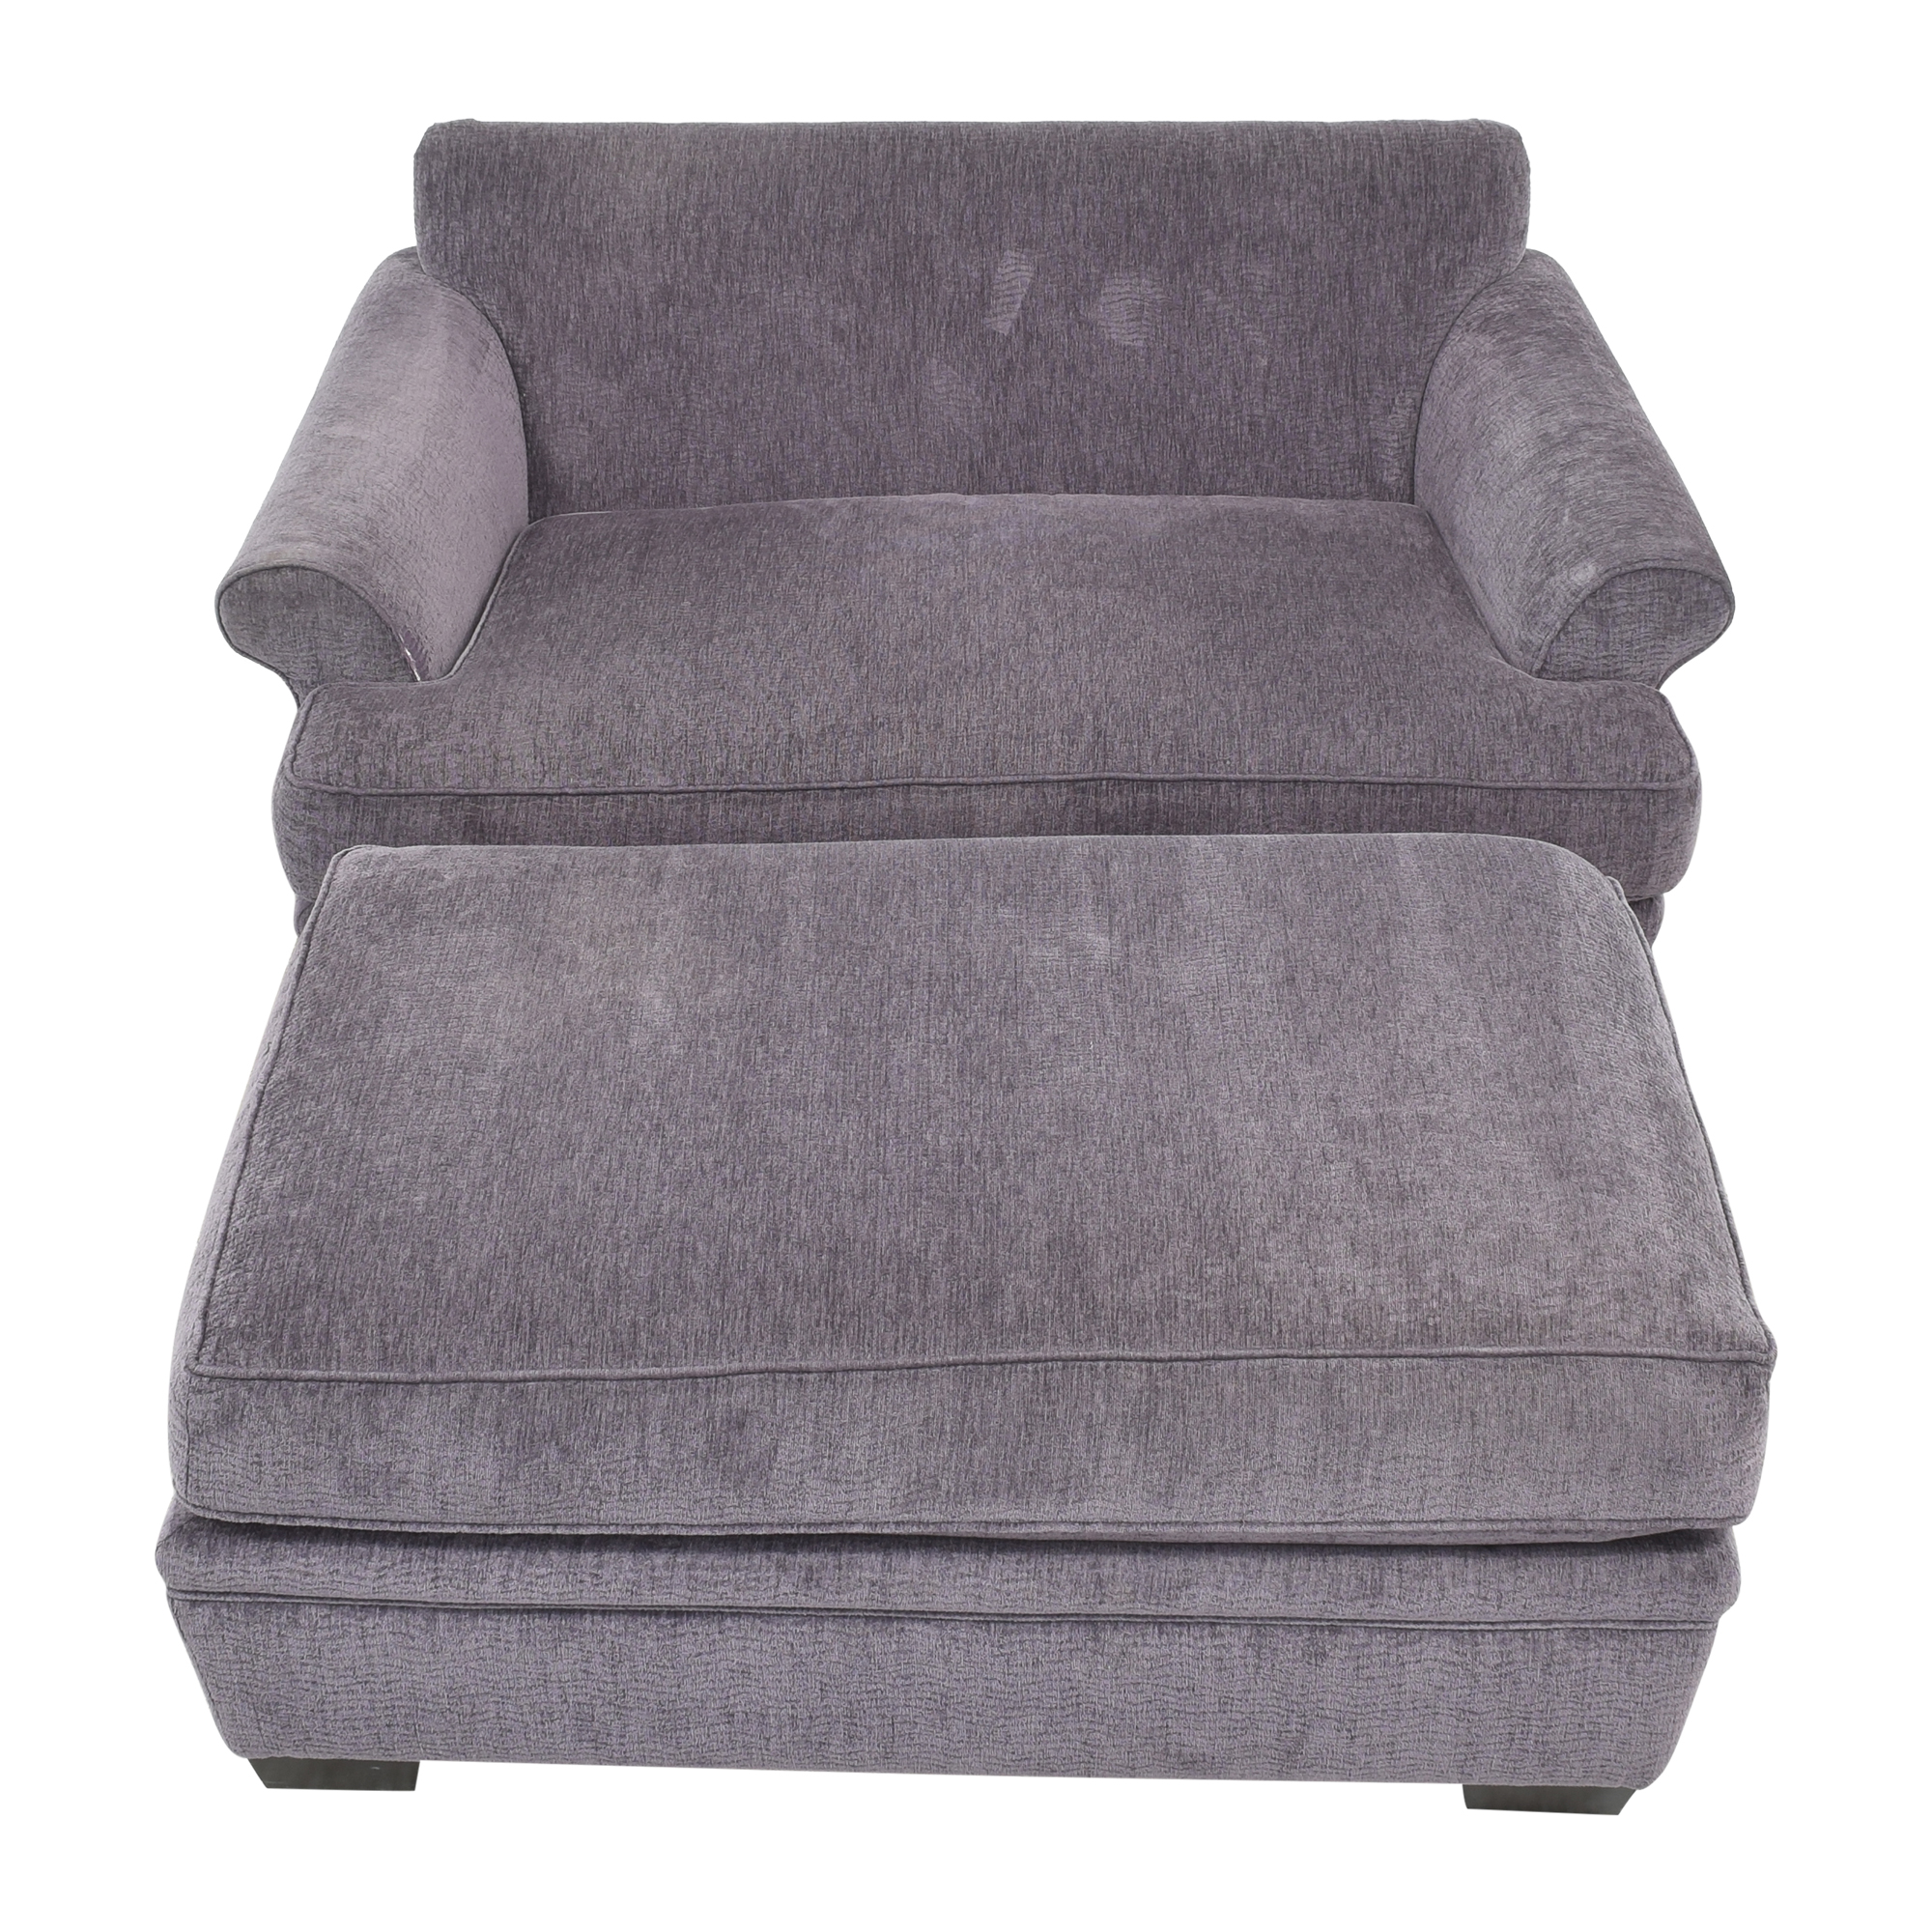 Carter Furniture Carter Double Wide Chair price